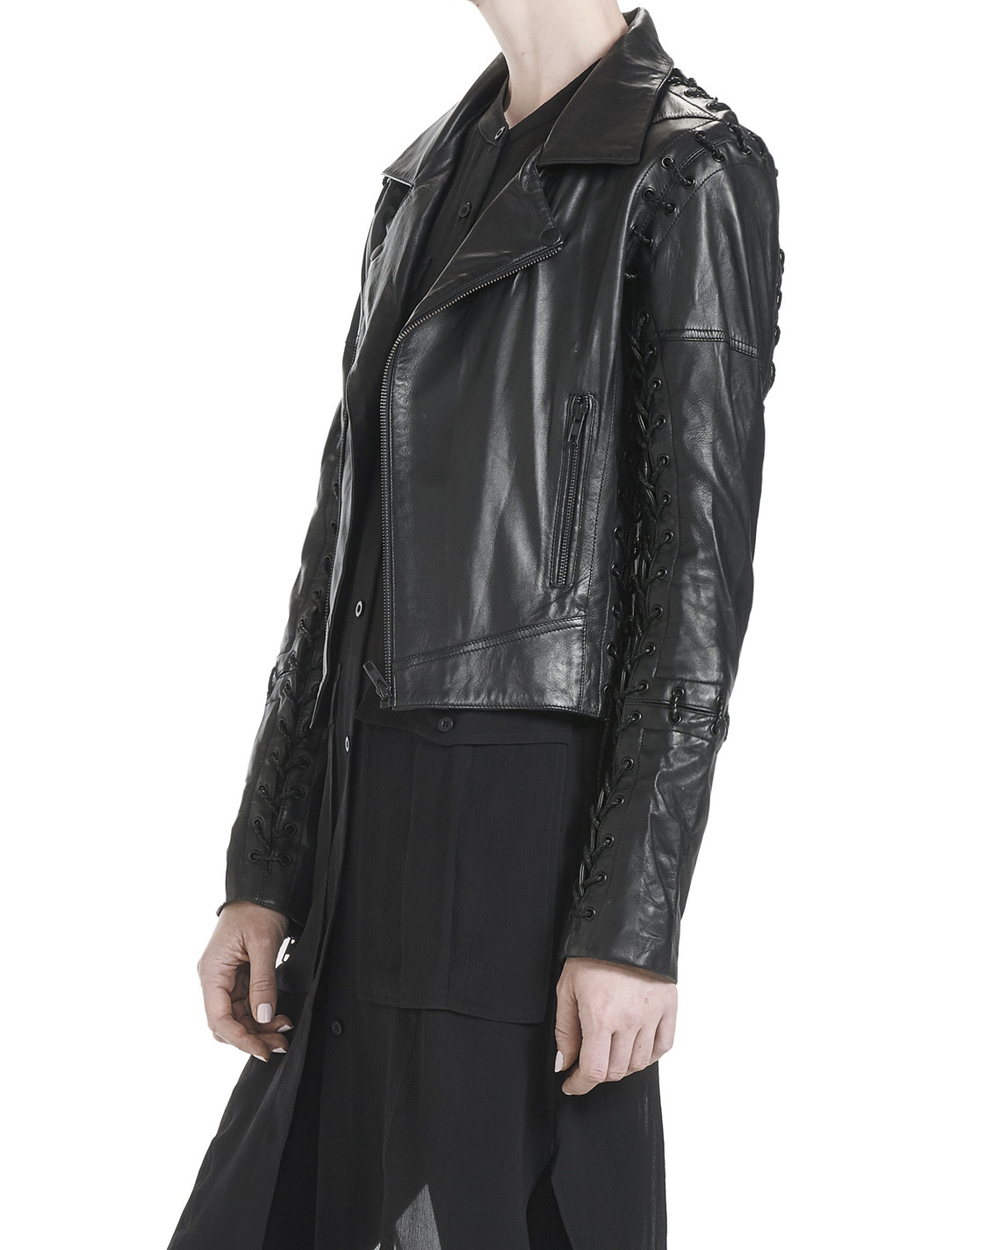 LACED LEATHER JACKET (It will be mine. Oh yes, it will be mine.... )